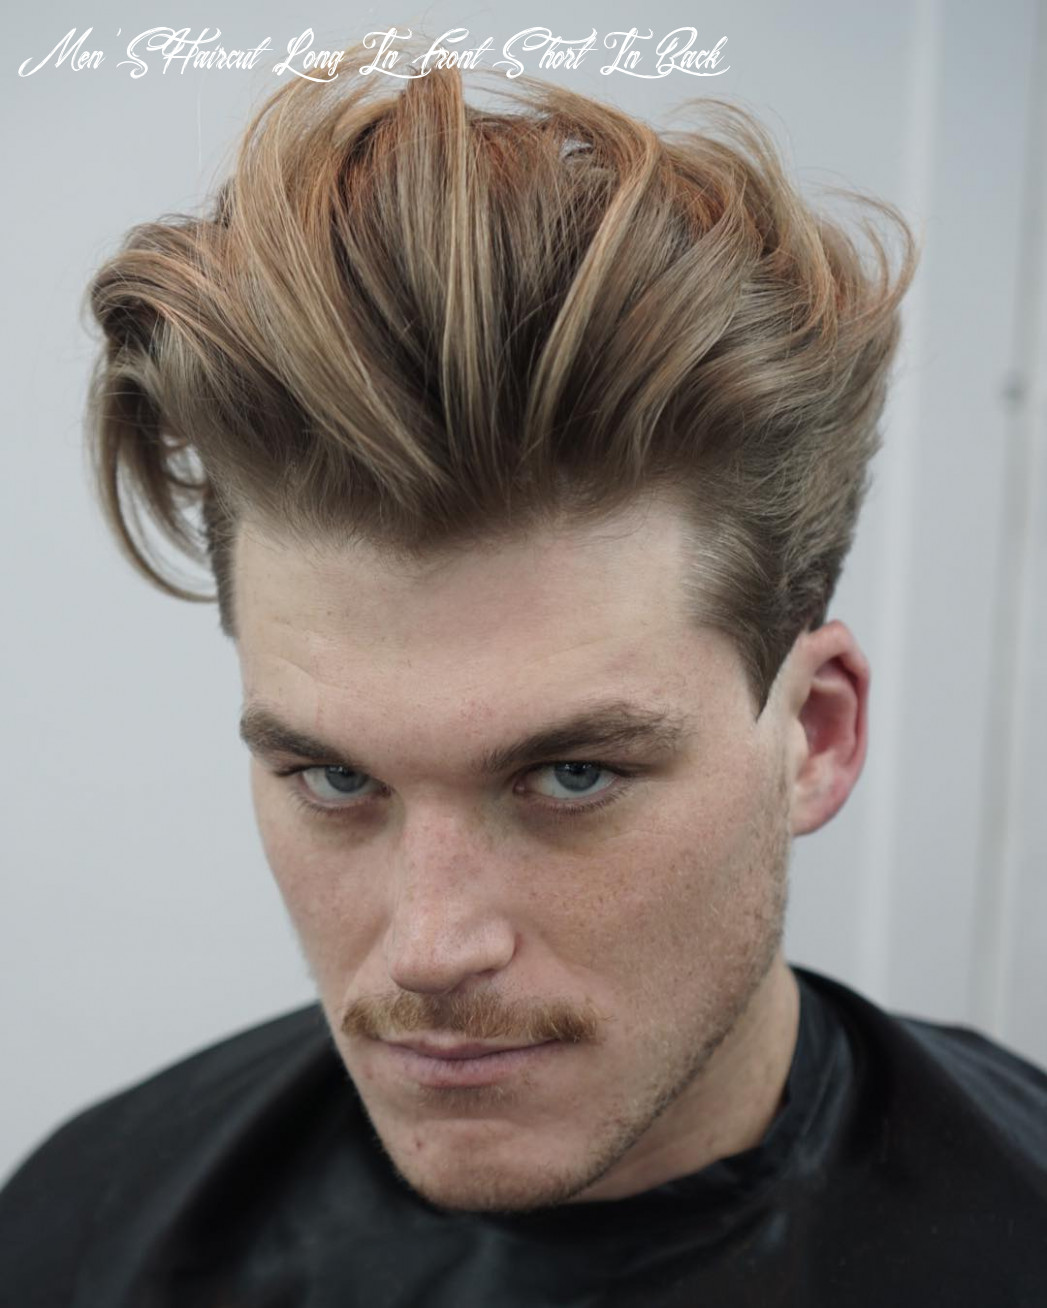 11+ Long Hair Haircuts + Hairstyles For Men: BEST Of -> July 11